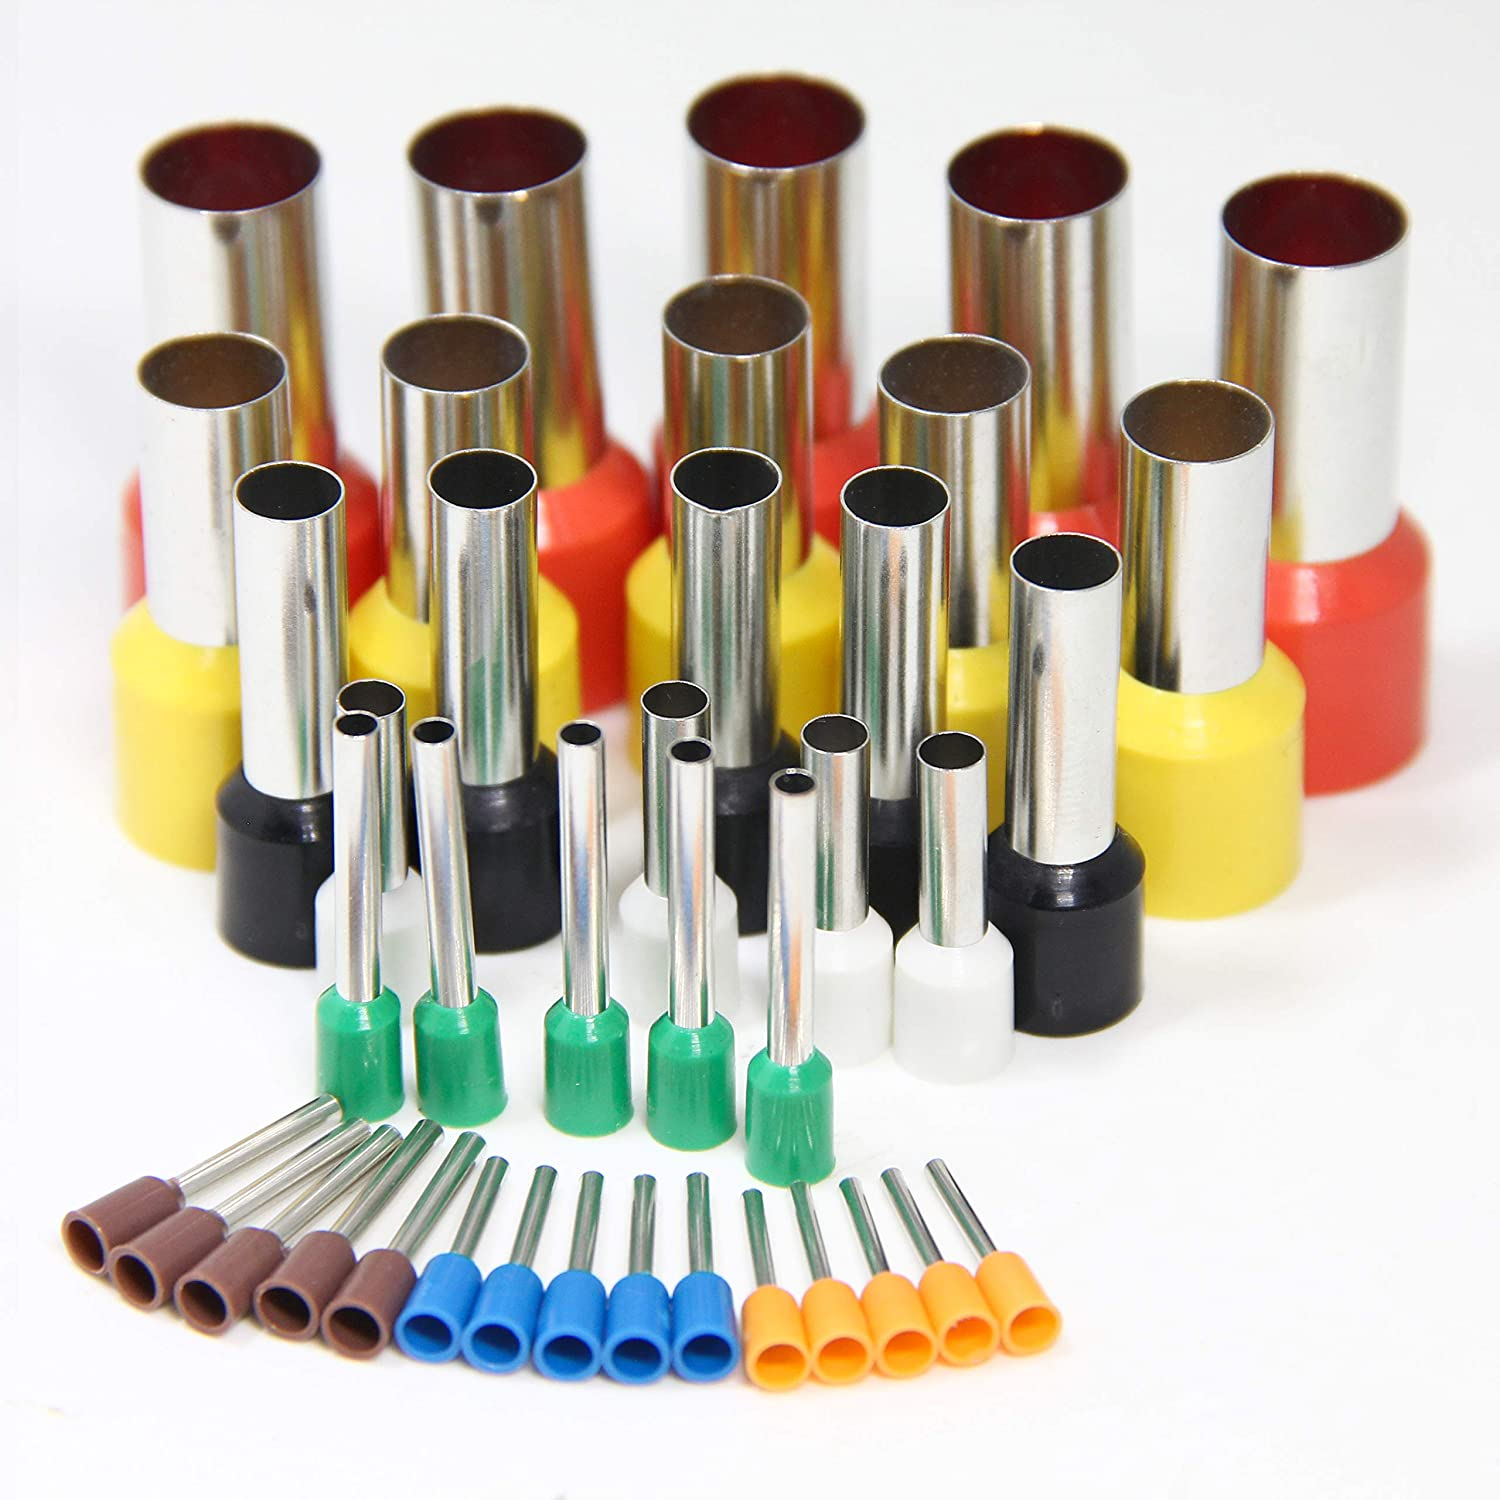 StickyDeal 40PCS Indentation Round Circle Shape Clay Cutters Mold Ceramics Dotting DIY Clay Cutting Tools with Storage Box Polymer Clay Cutters